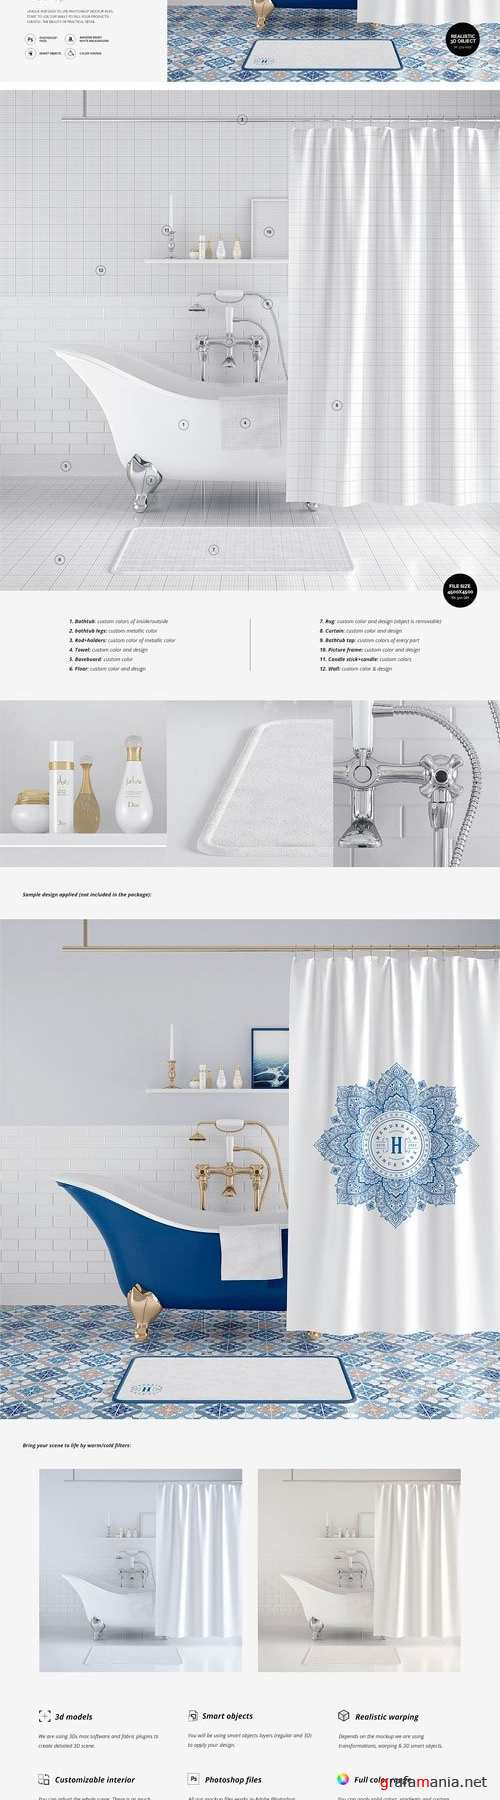 Bath Curtain Mockup 4 - 2448895